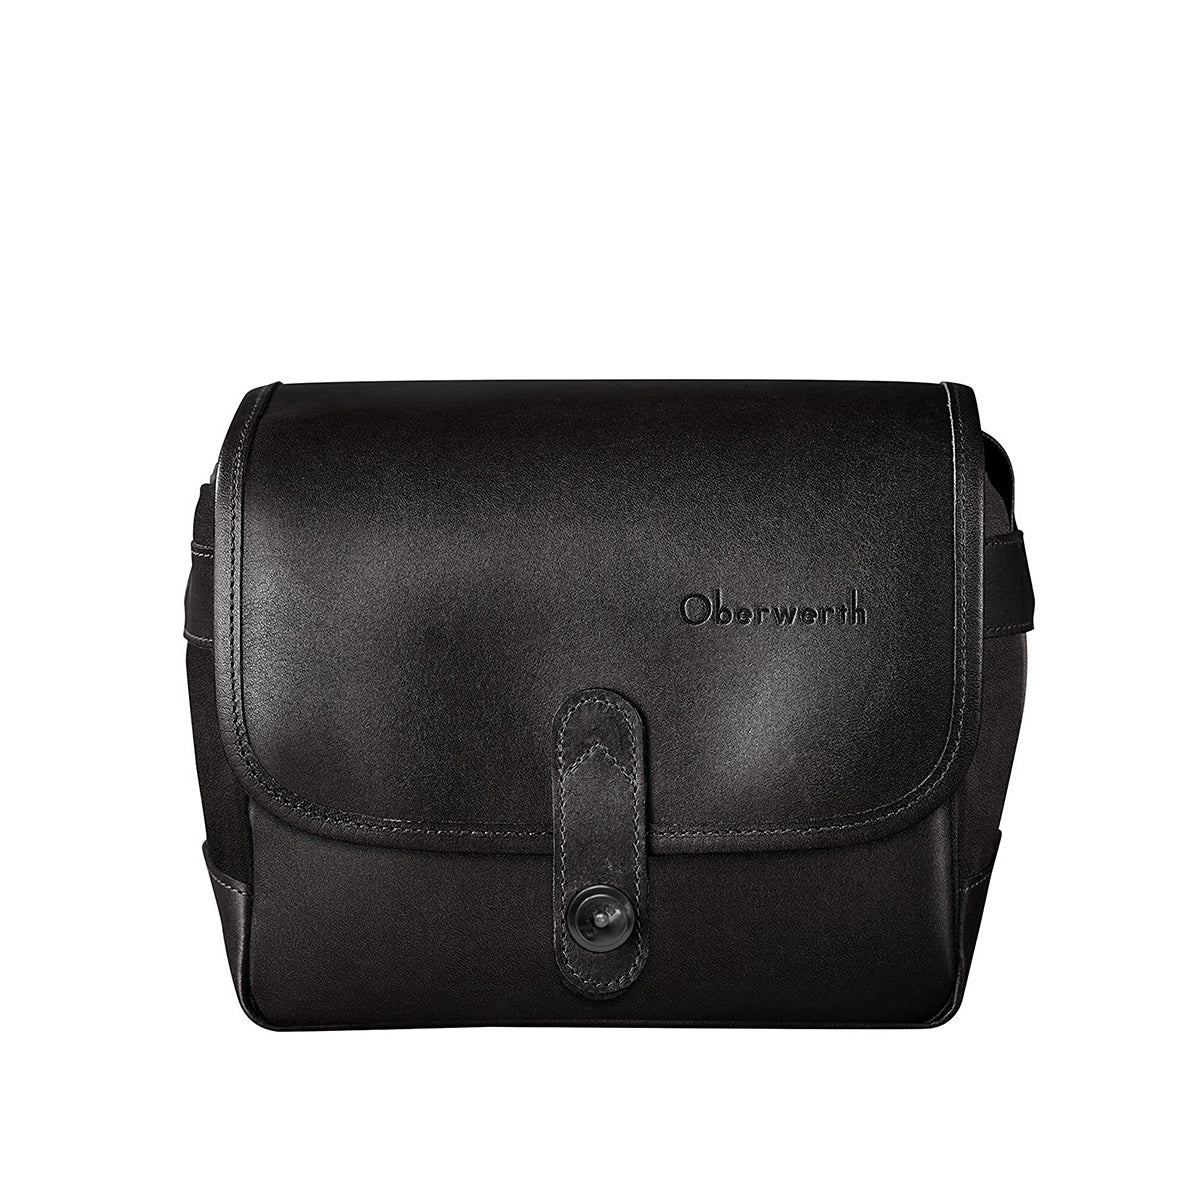 Oberwerth Frankfurt Small Leather Photo Bag - 'Stealth' Edition - Black with Red Lining